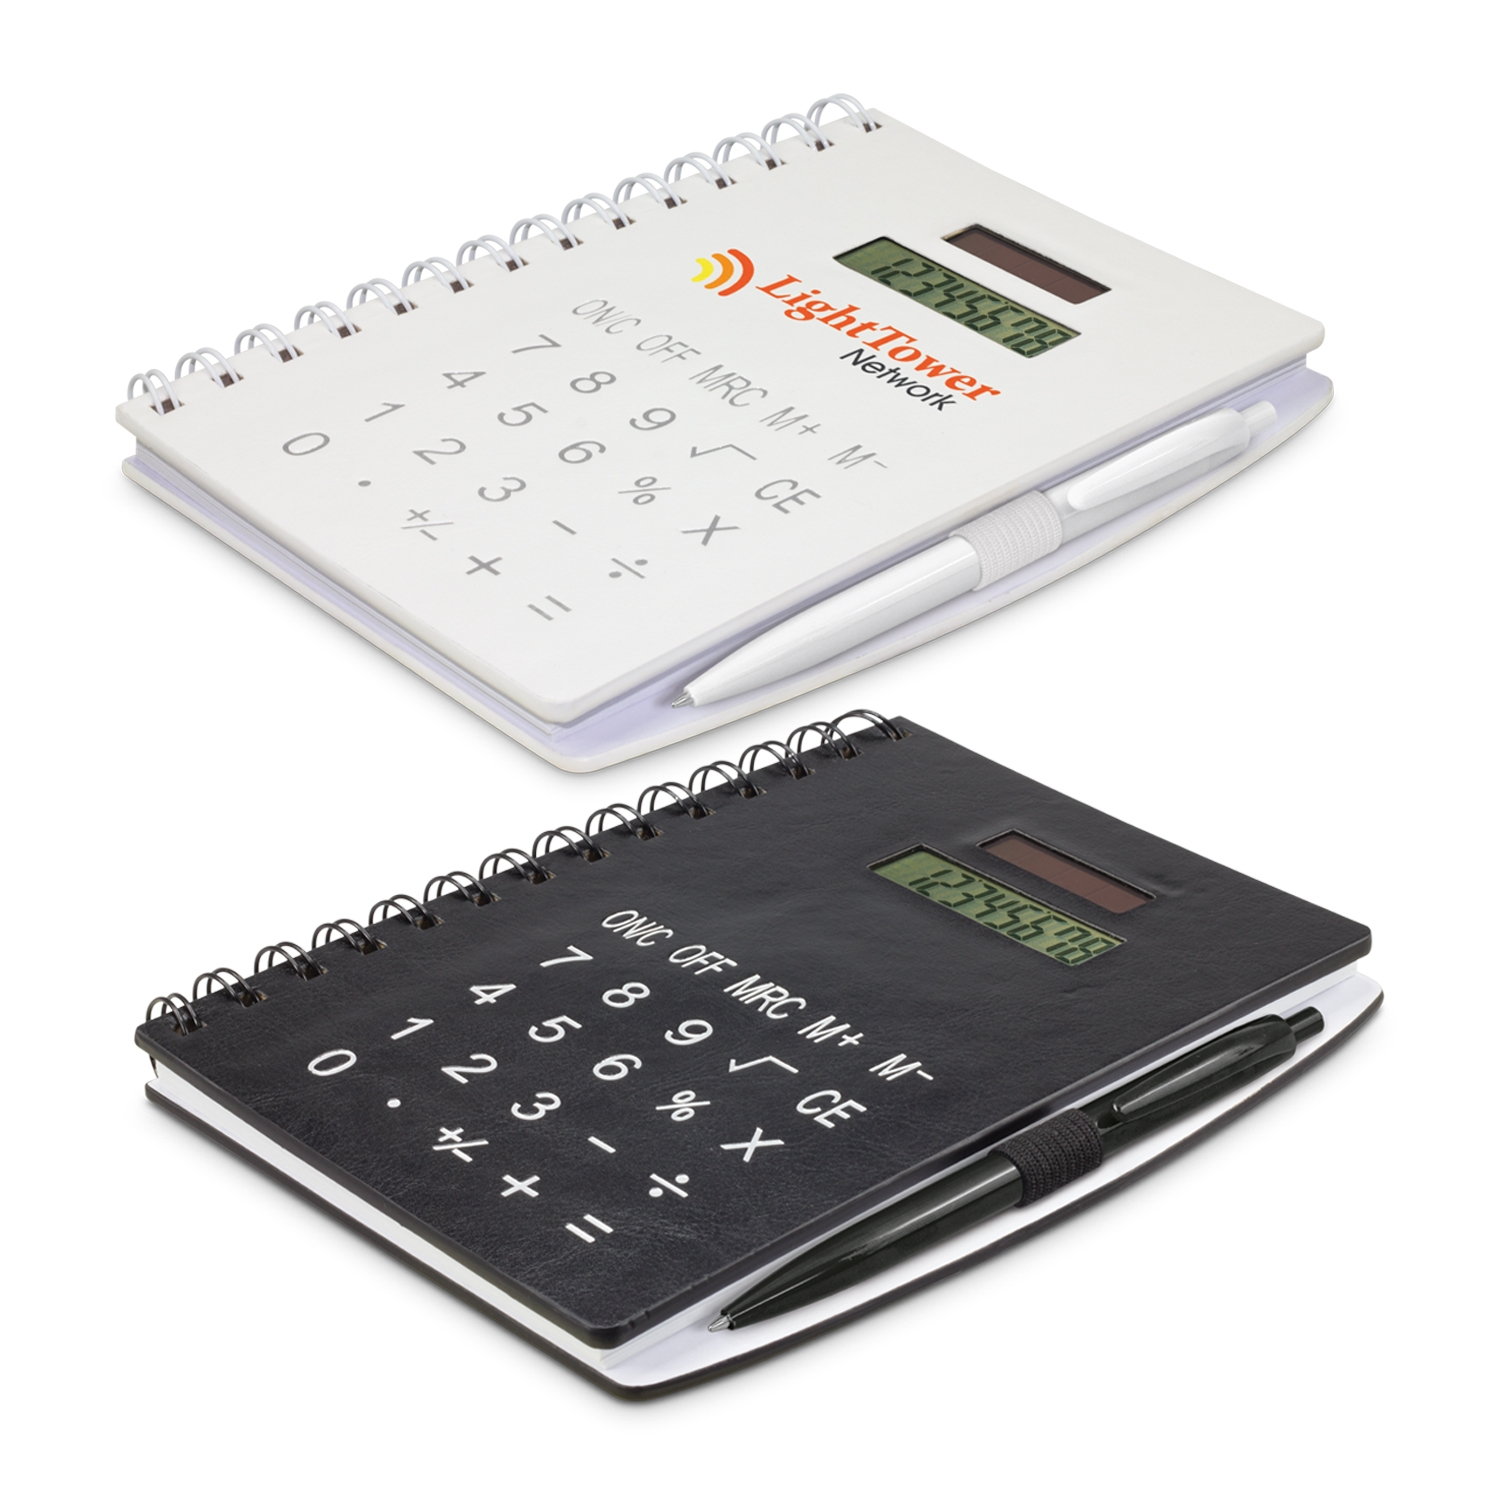 110500-0-Notebook with Calculator